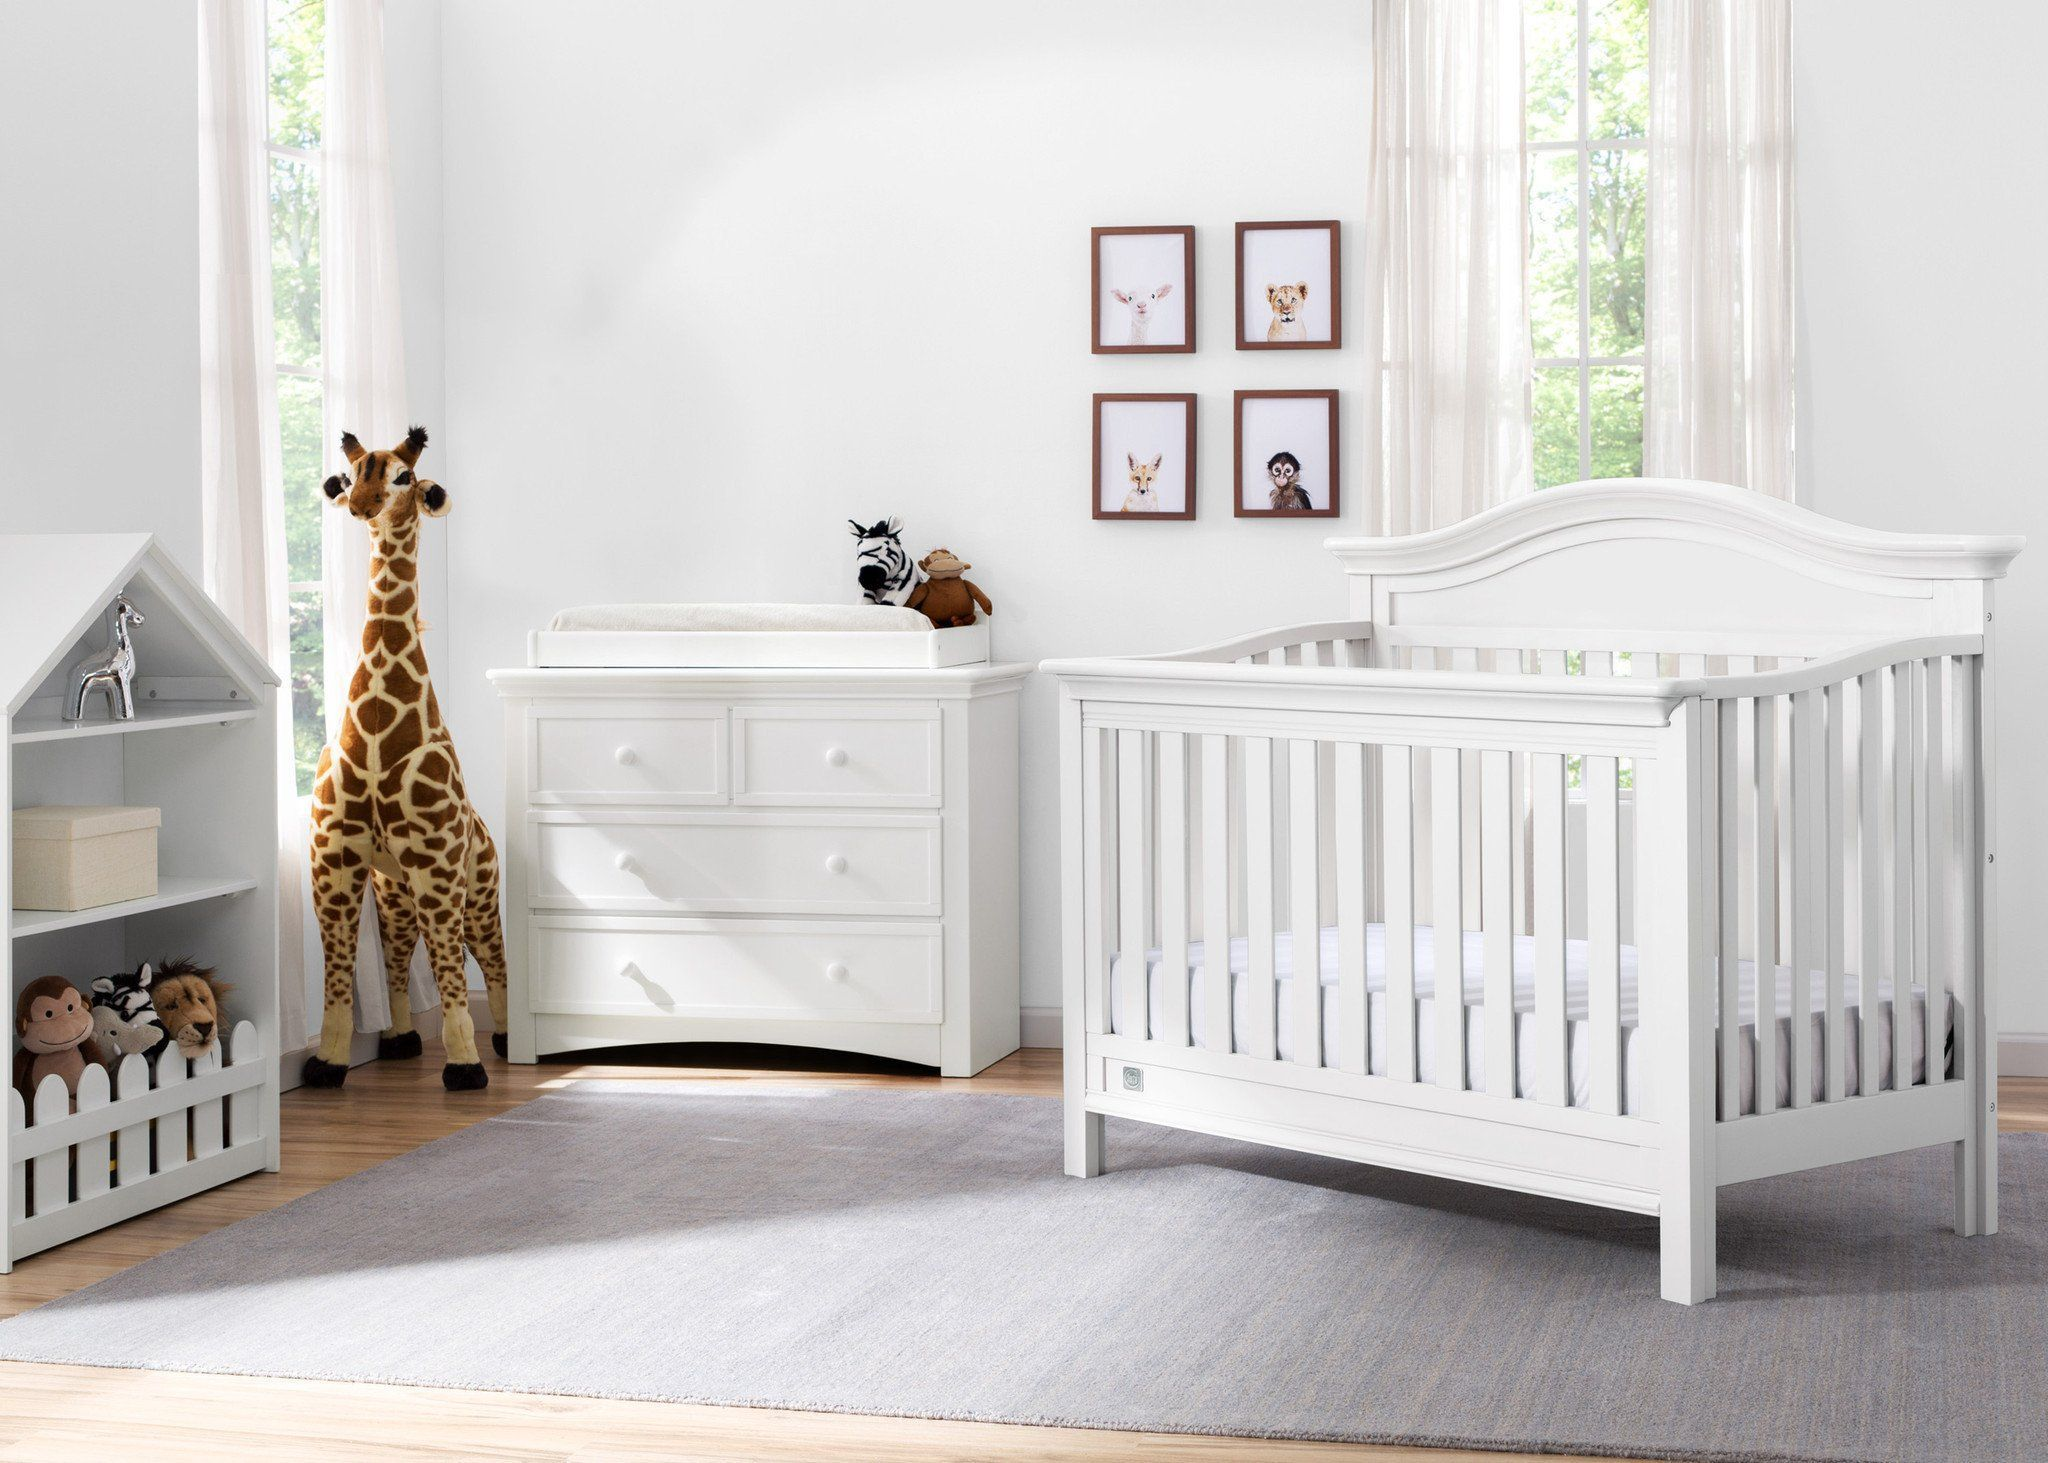 Serta Bianca (130) Banbury 4-in-1 Convertible Crib, Room View b1b